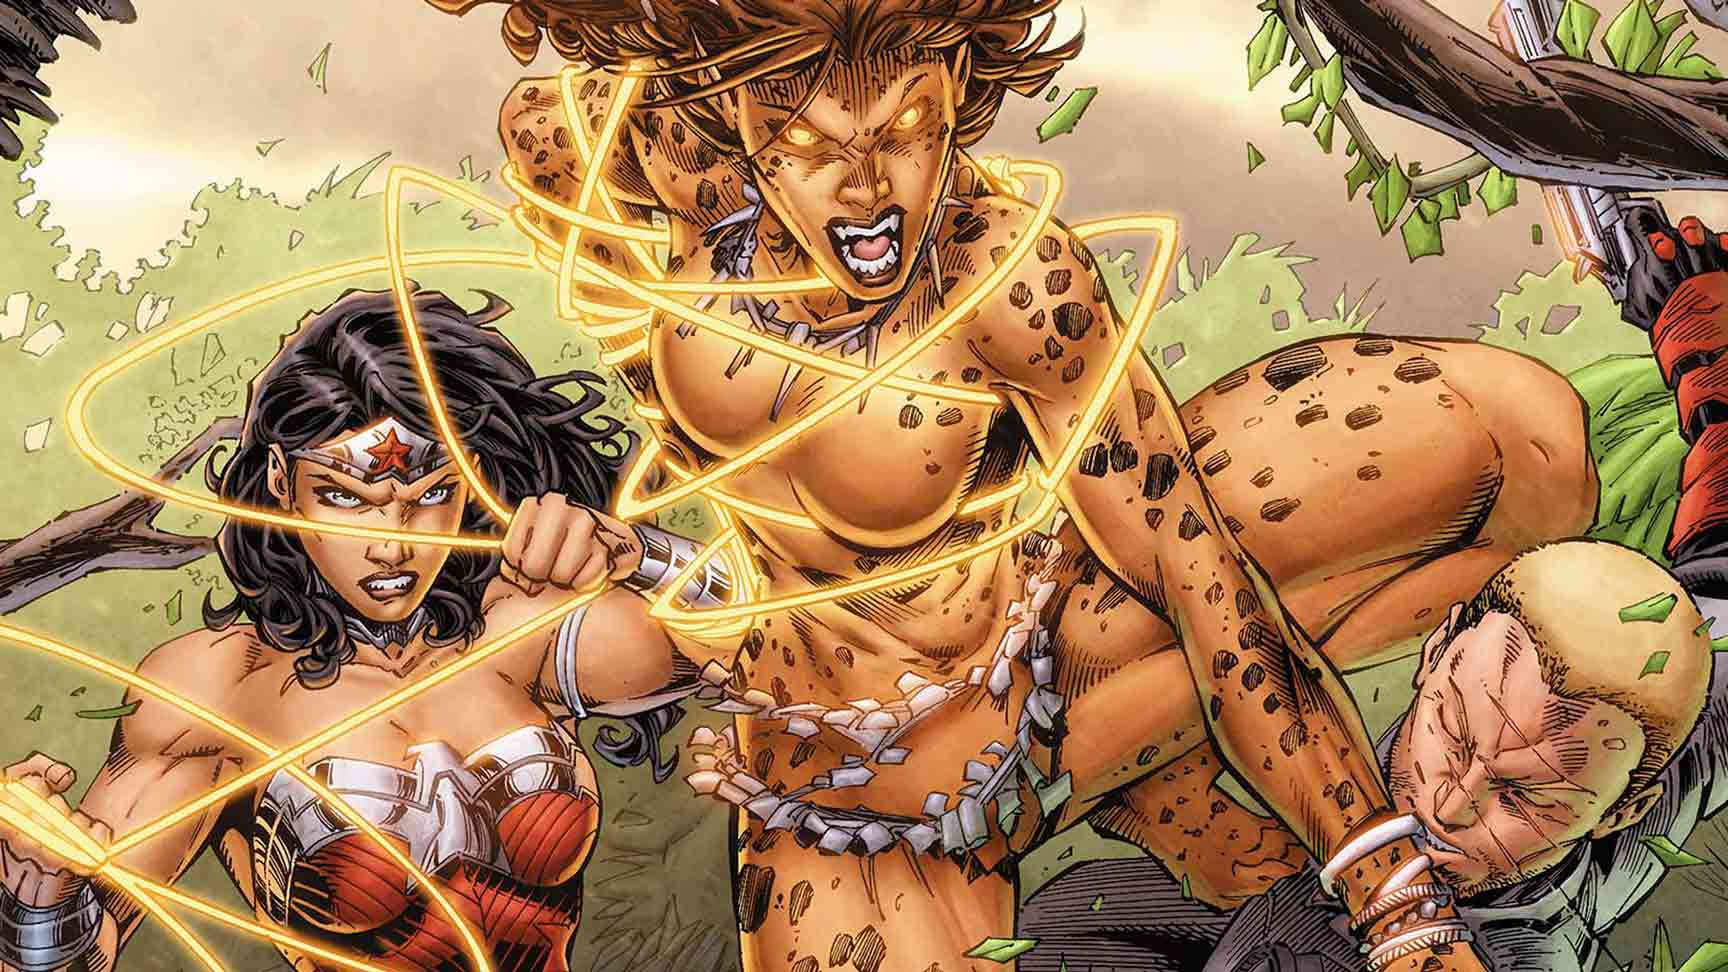 Wonder Woman villain Cheetah